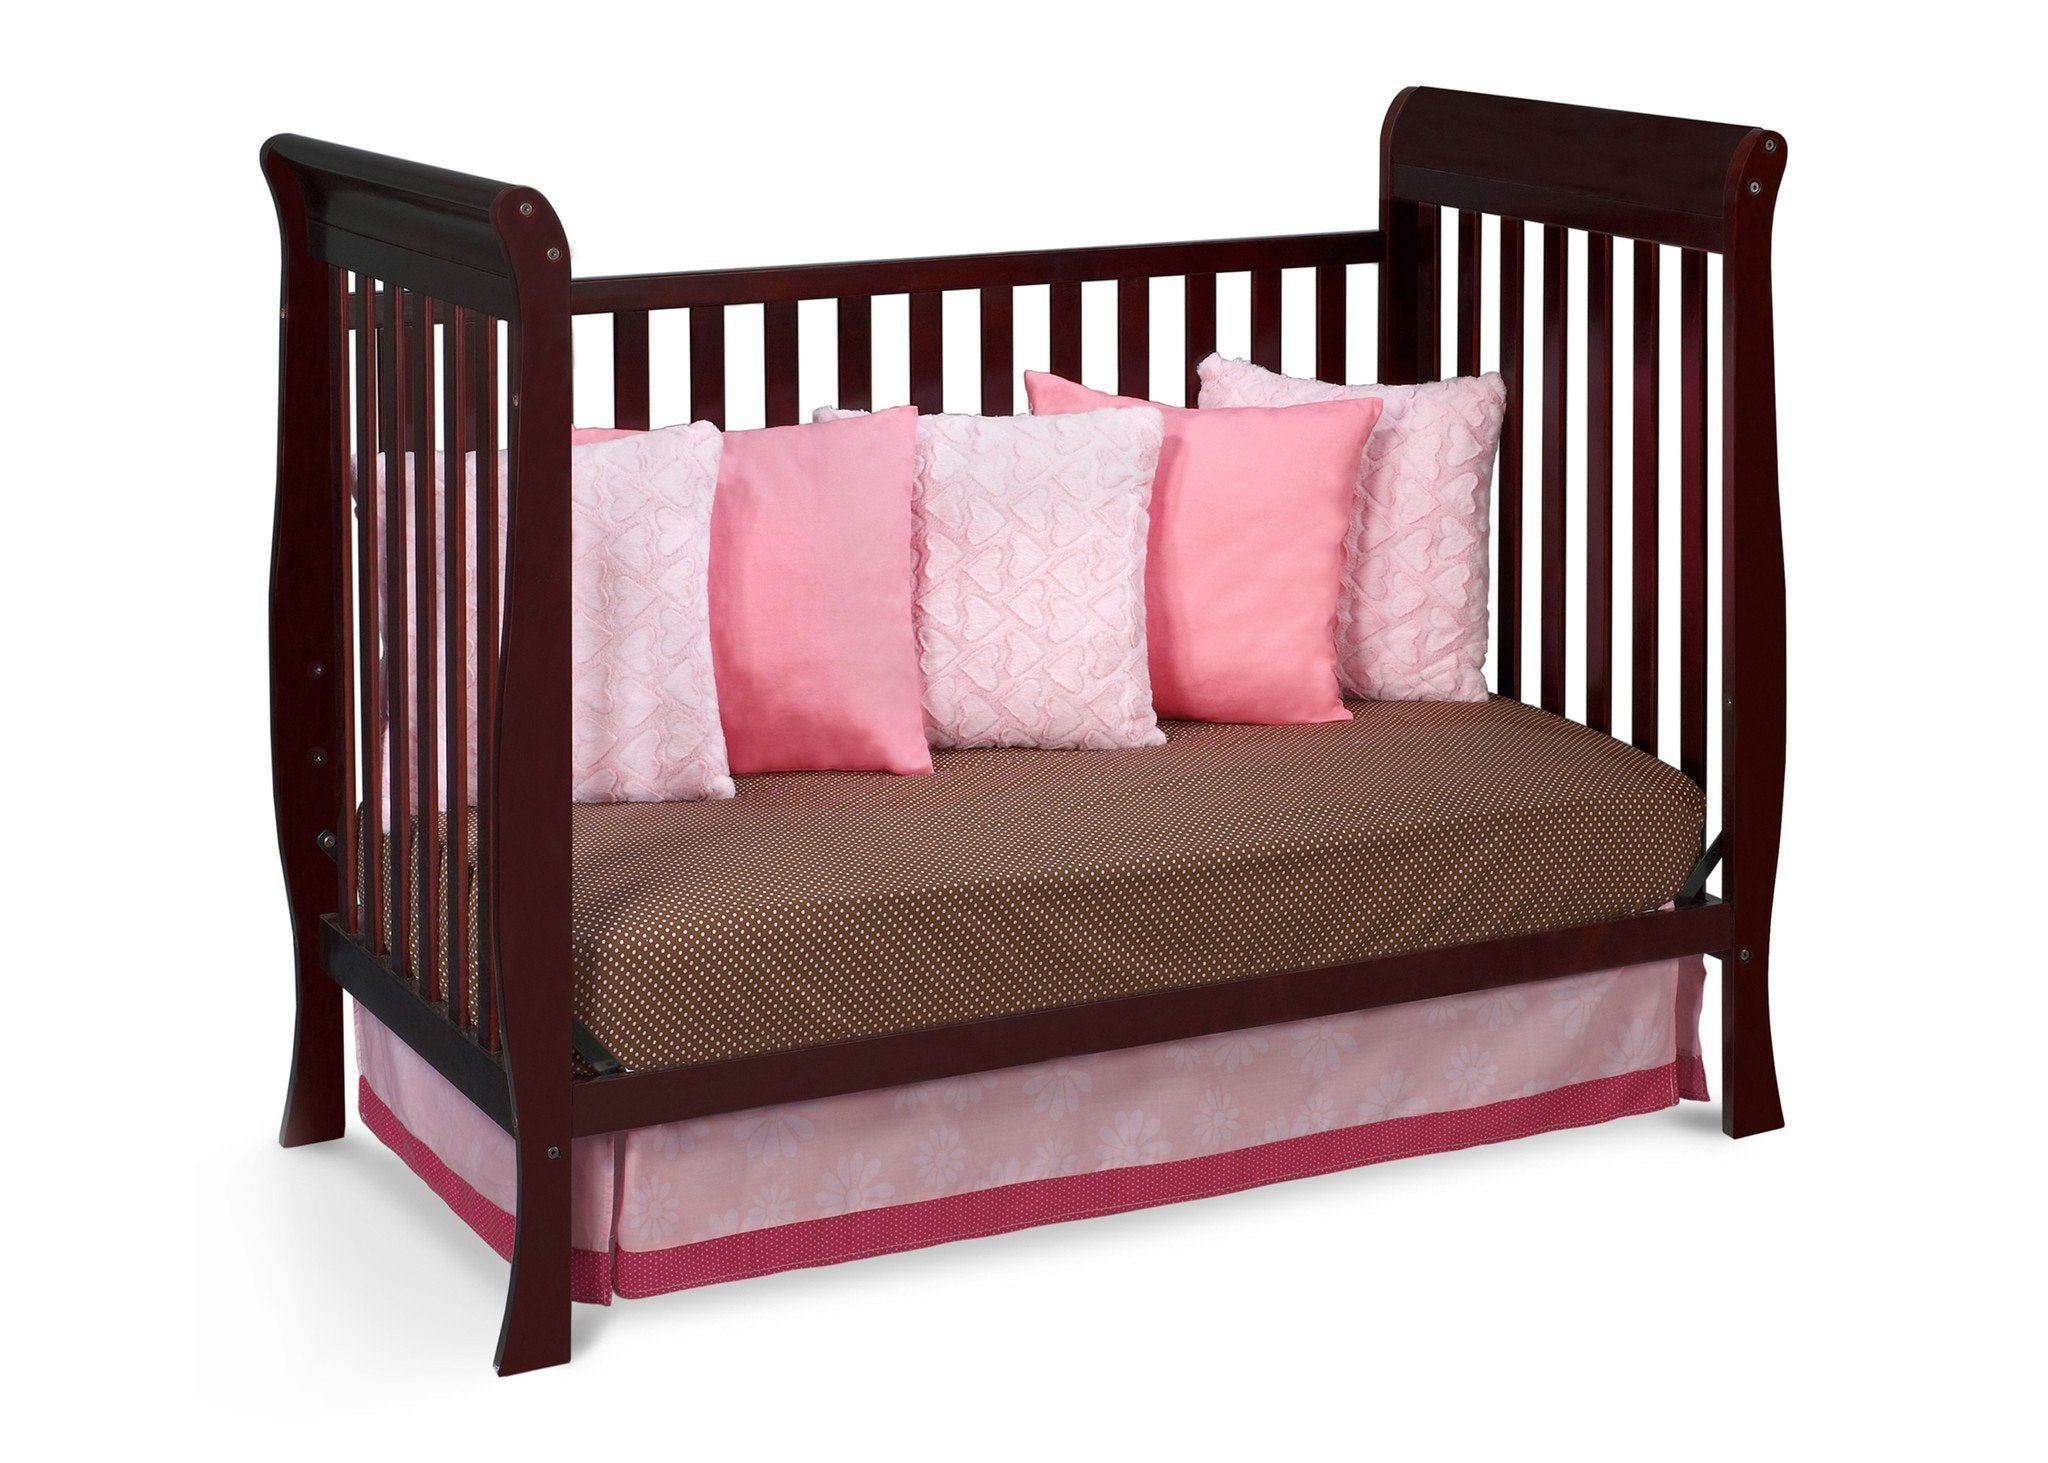 Delta Children Espresso Java (645) Winter Park 3-in-1 Crib, Day Bed Conversion d3d